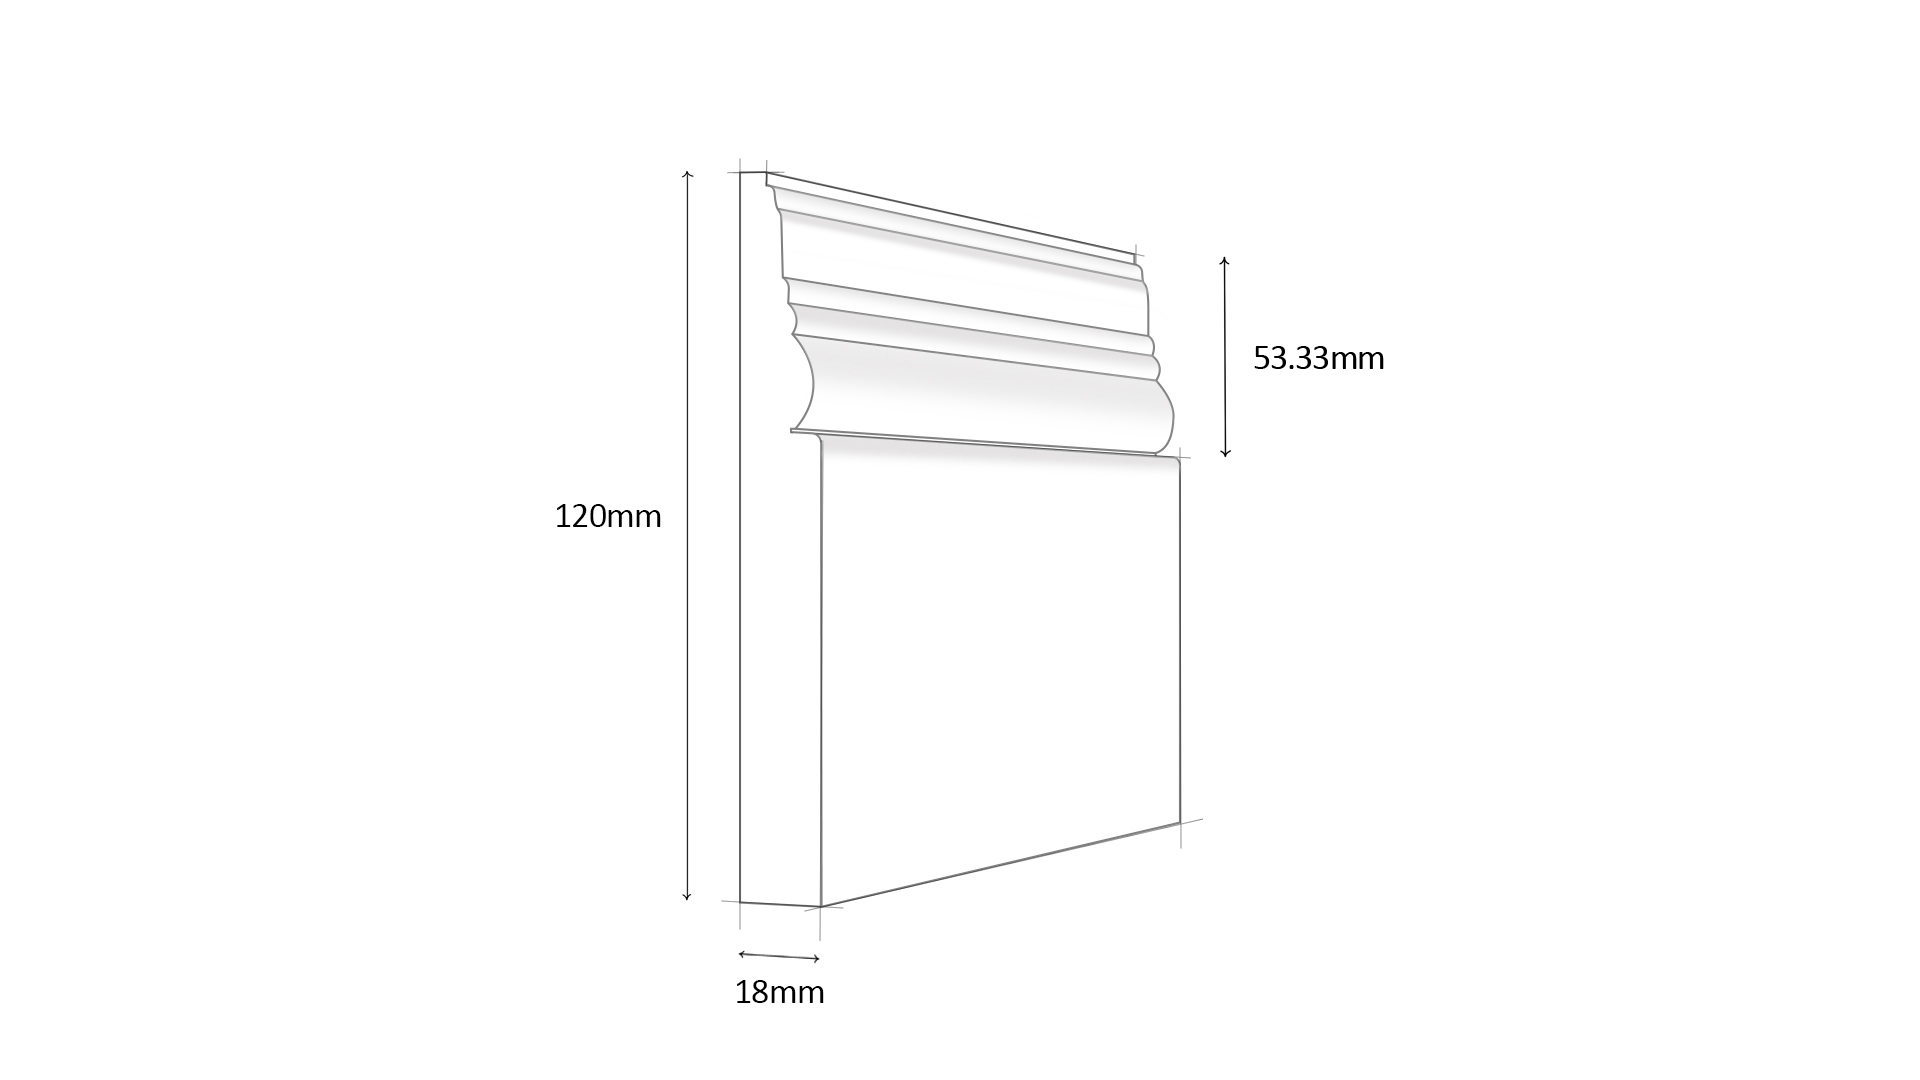 Antique MDF Skirting Board with profile dimensions